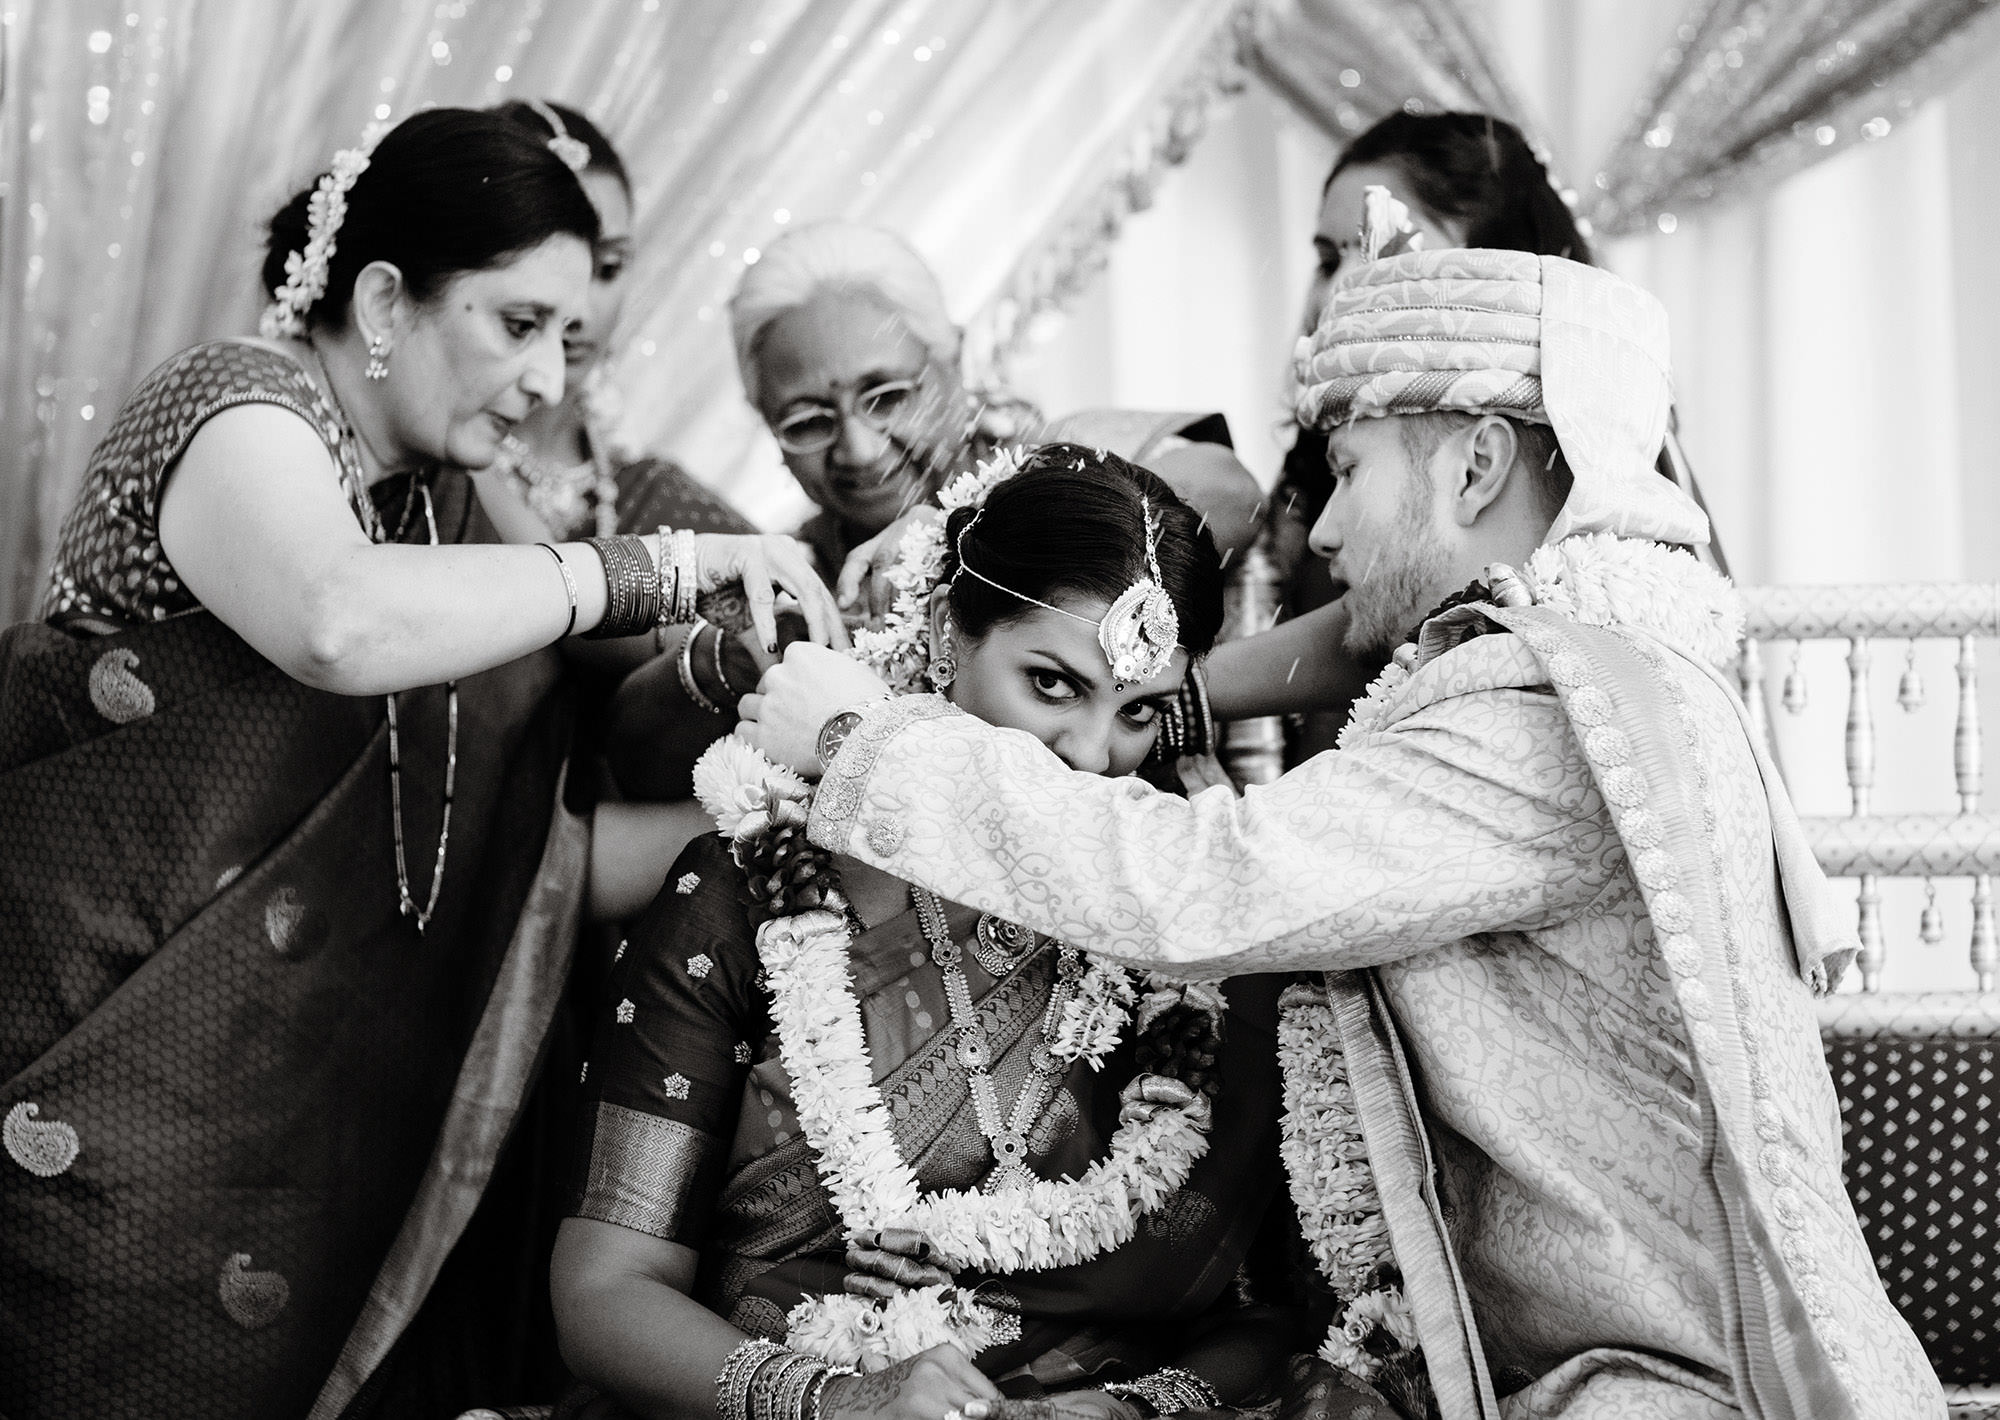 The Bride and Groom participate in a  Hindu Ceremony at Foxchase Manor.